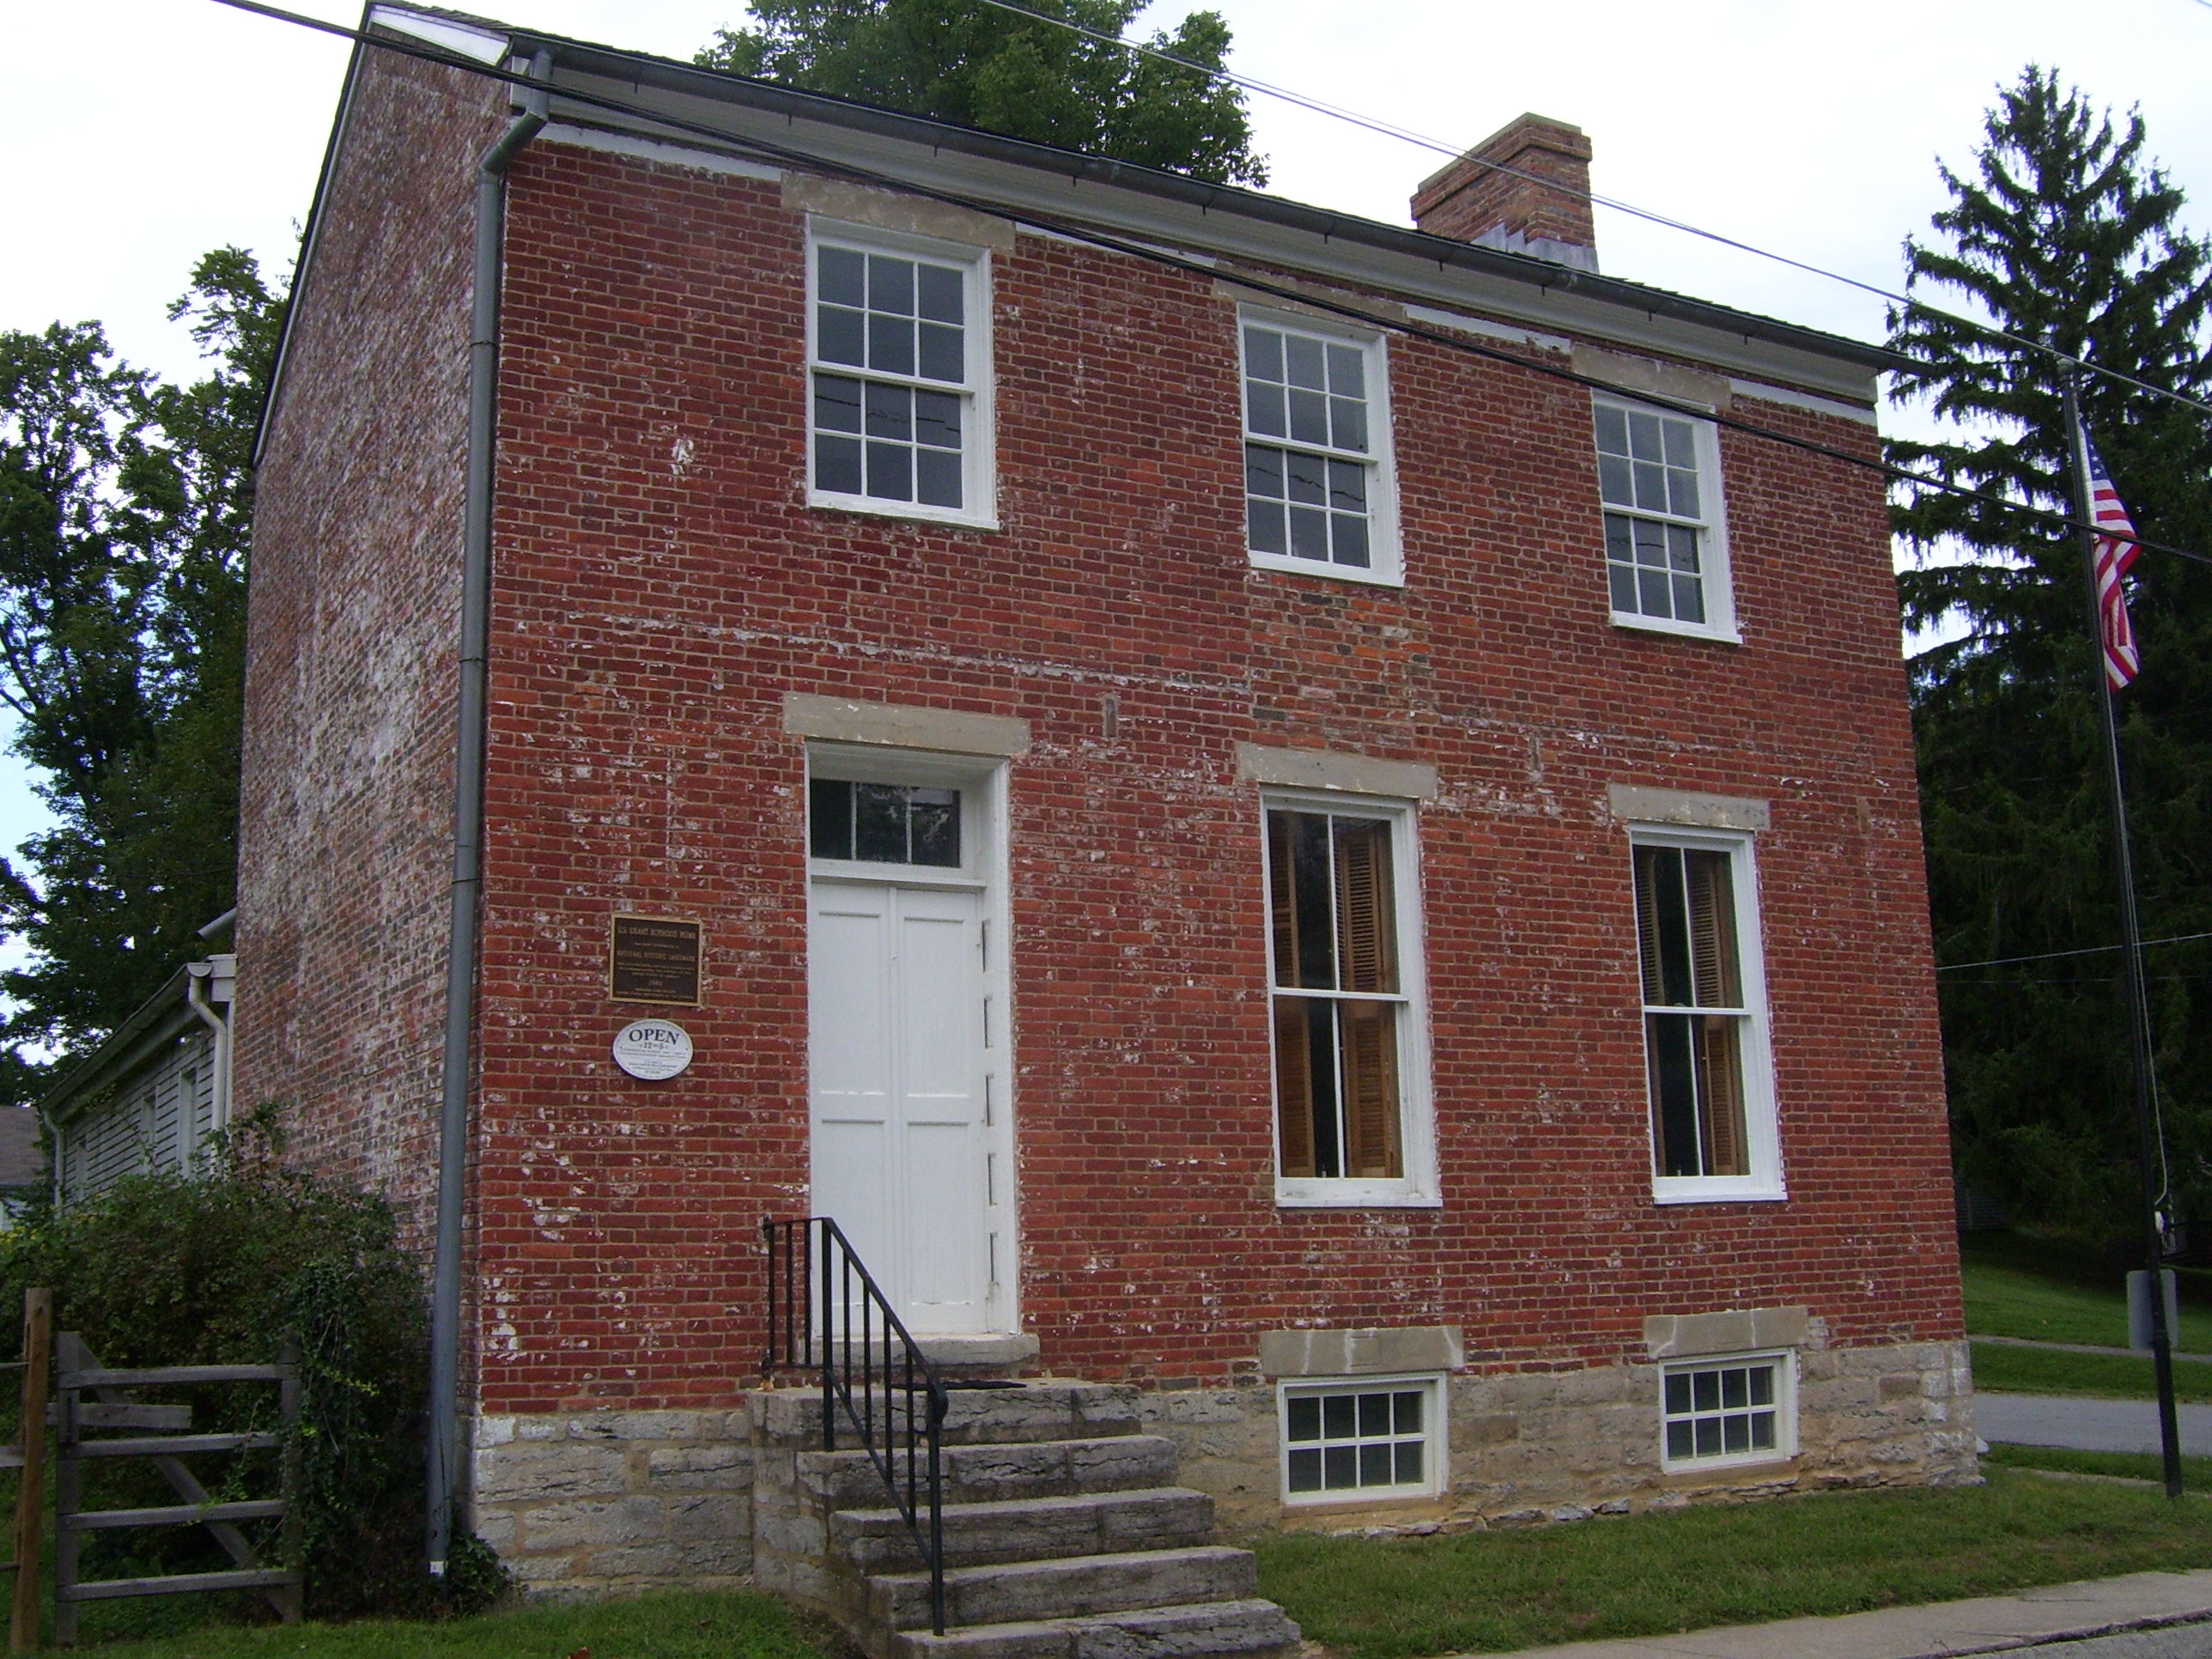 Grant lived in this home from 1823 (when he was one year old) until 1839, when he left home and attended the US Military Academy at West Point.